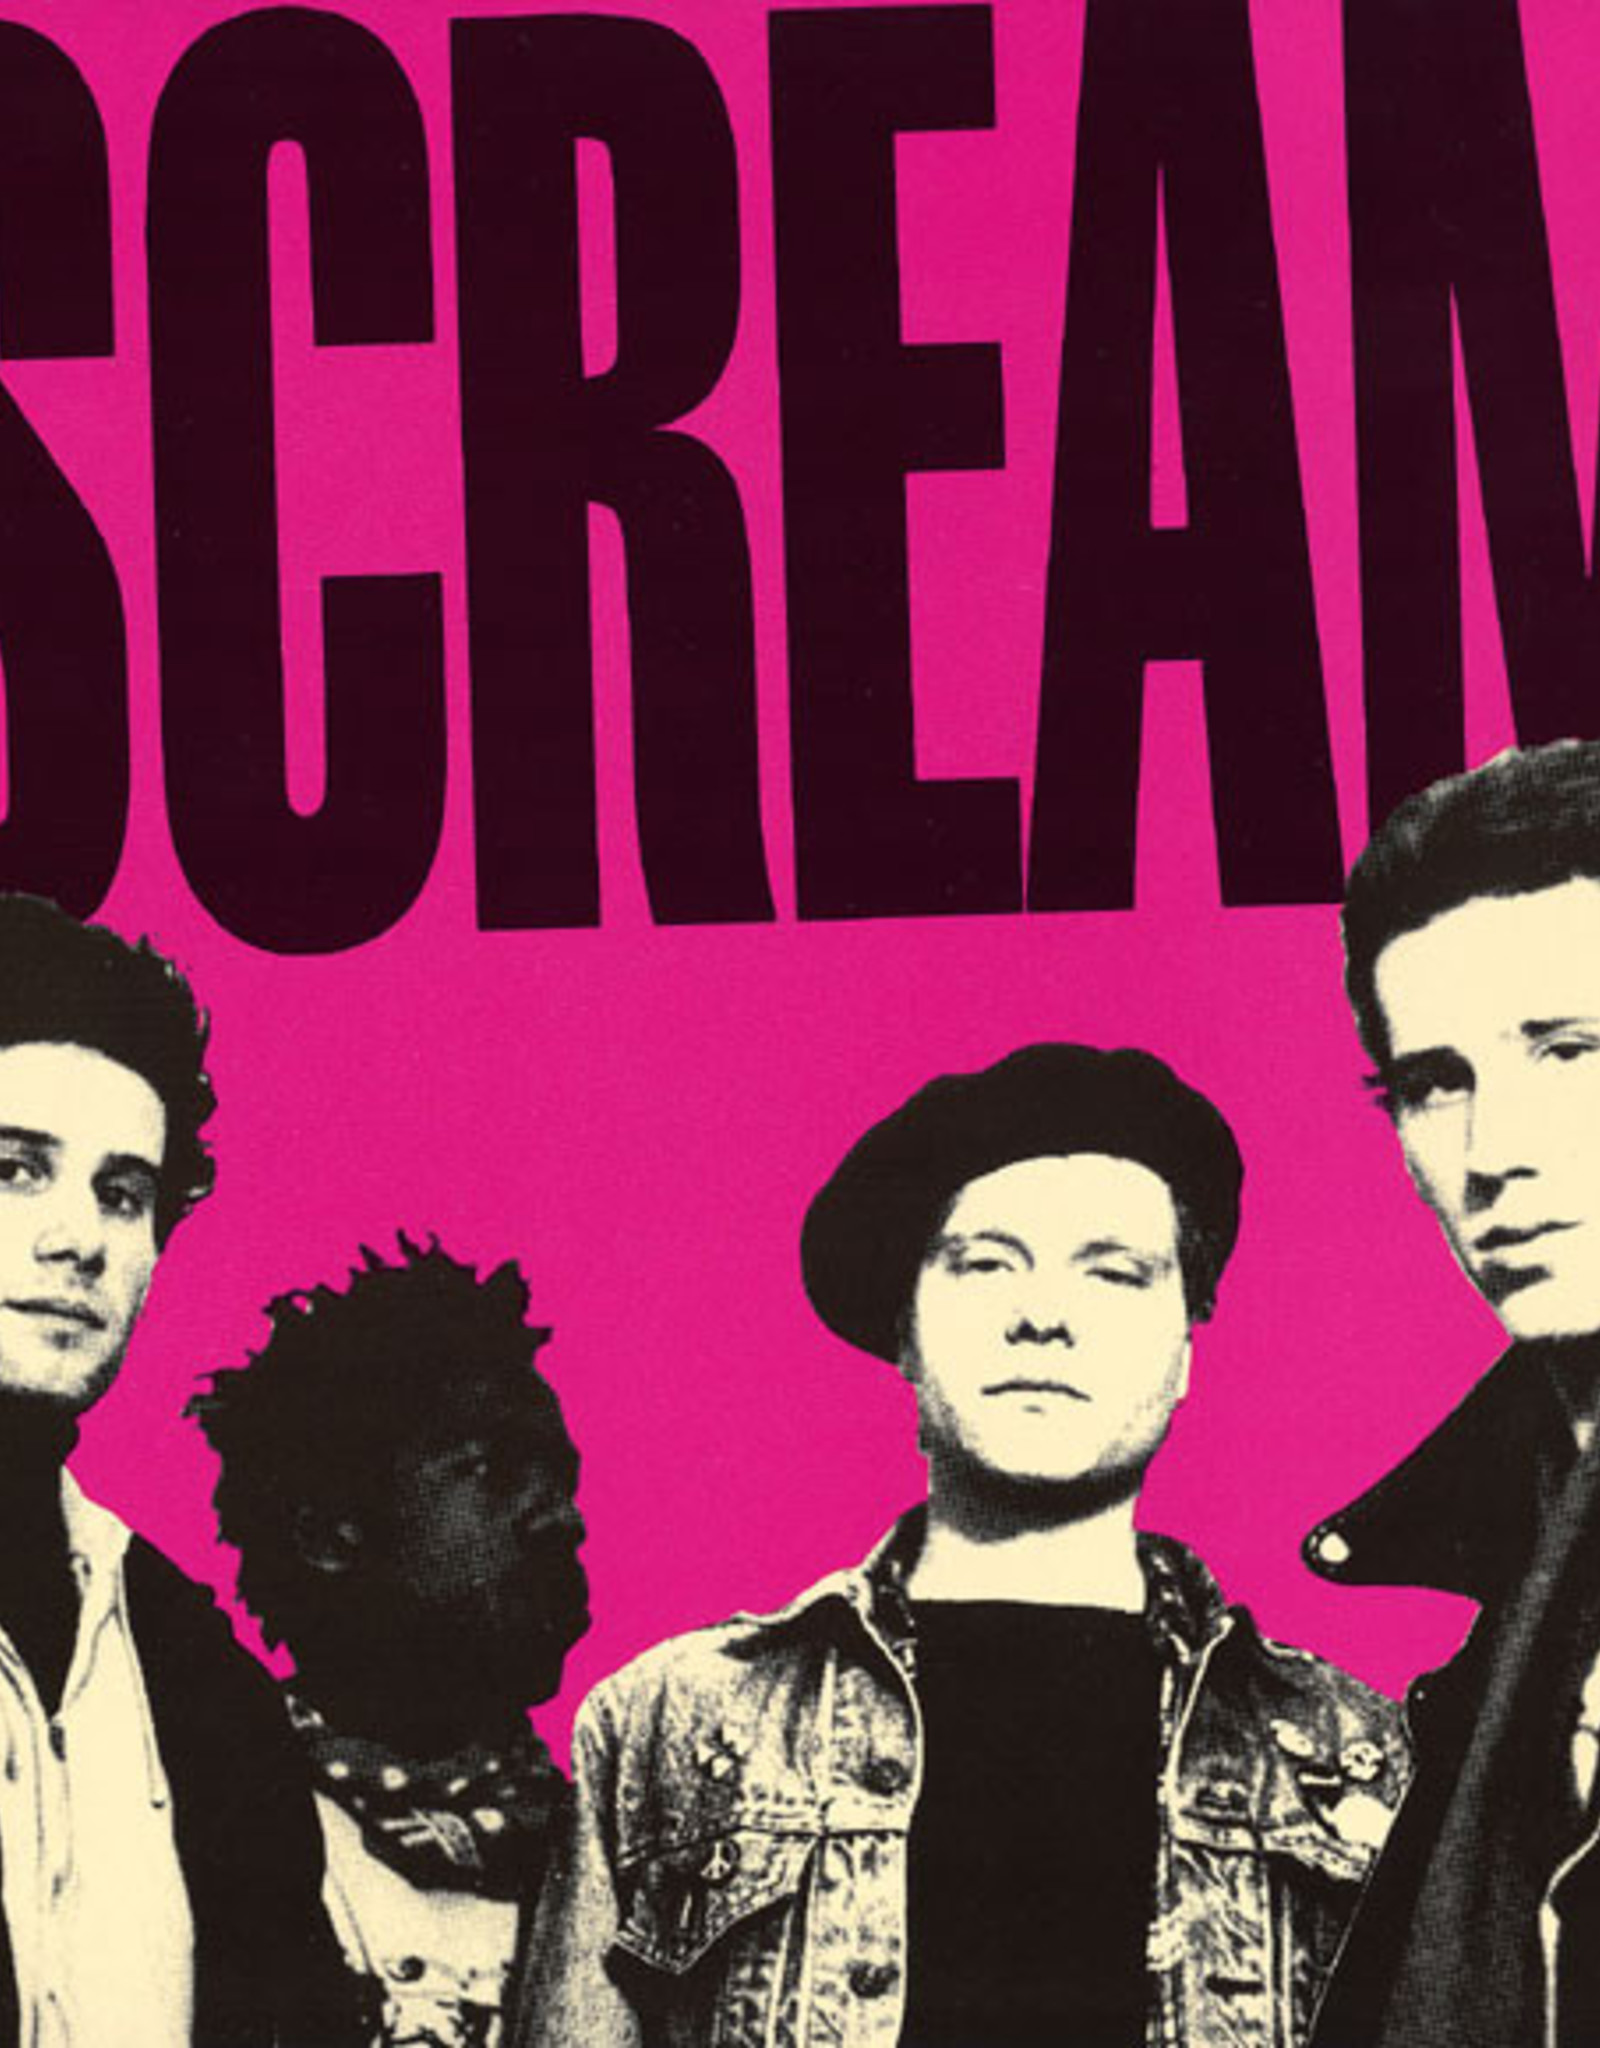 Scream - This Side Up